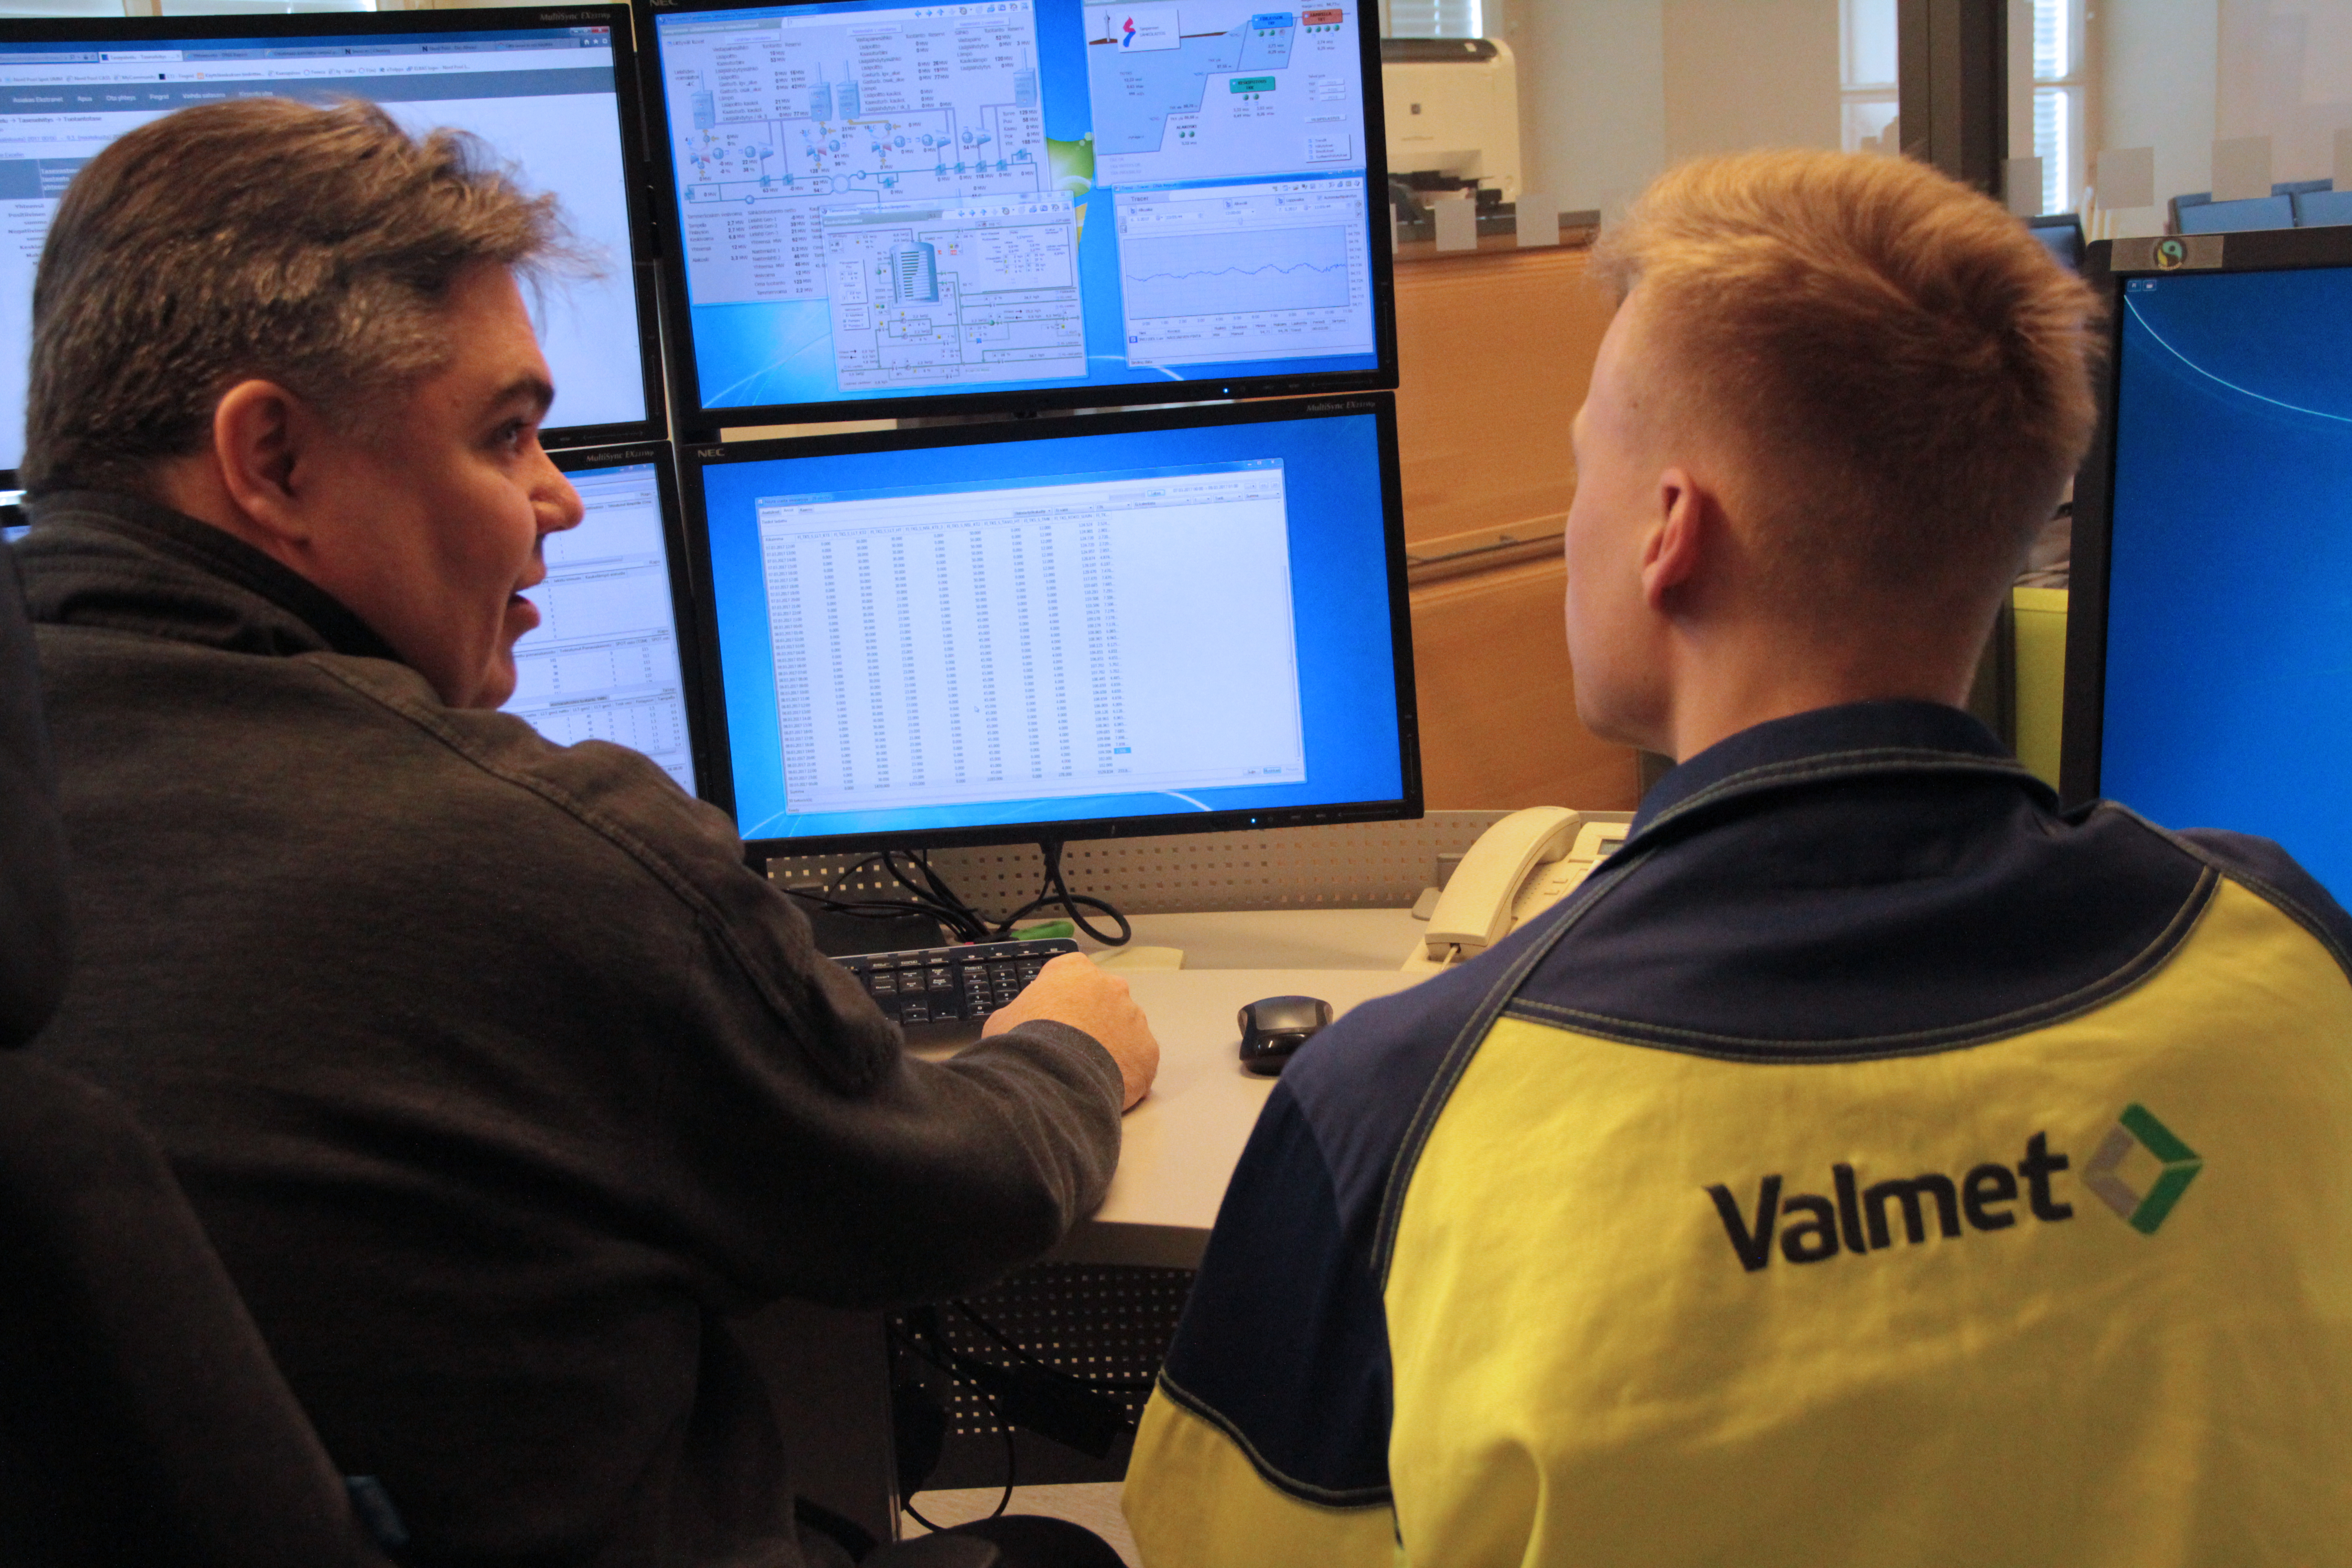 Marko Ketola_TKS and Jyri Kaivosoja_Valmet in the control room